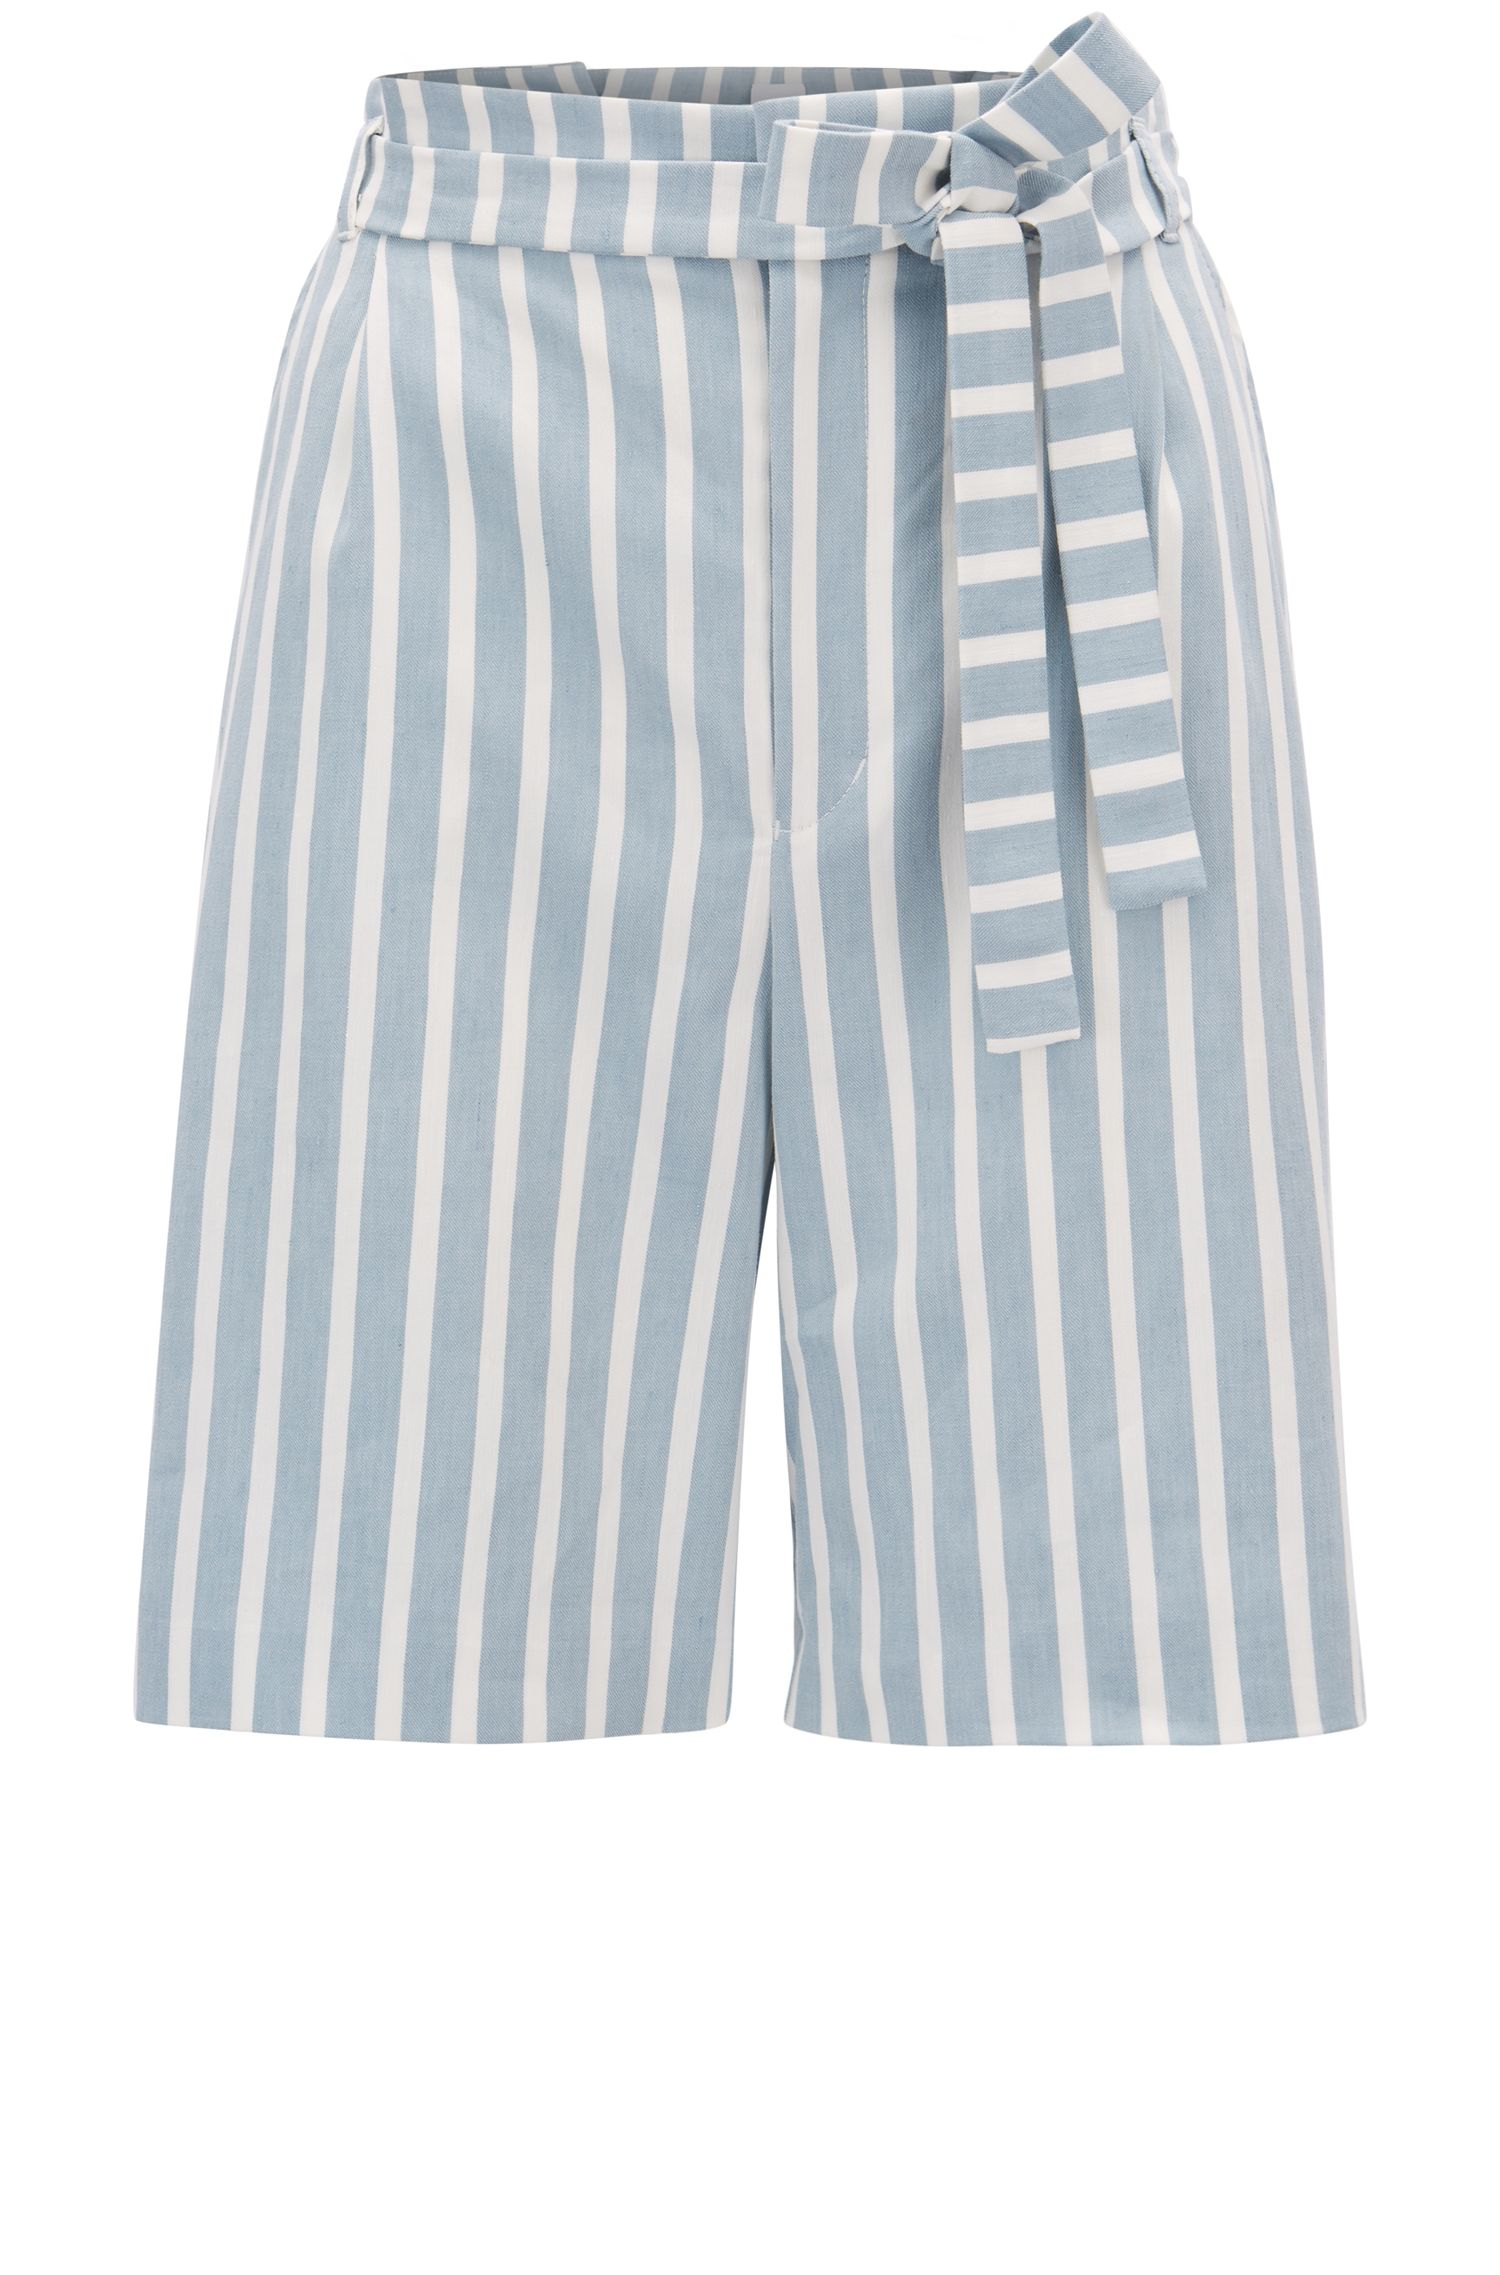 Stretch linen-blend striped shorts with pleated waistband